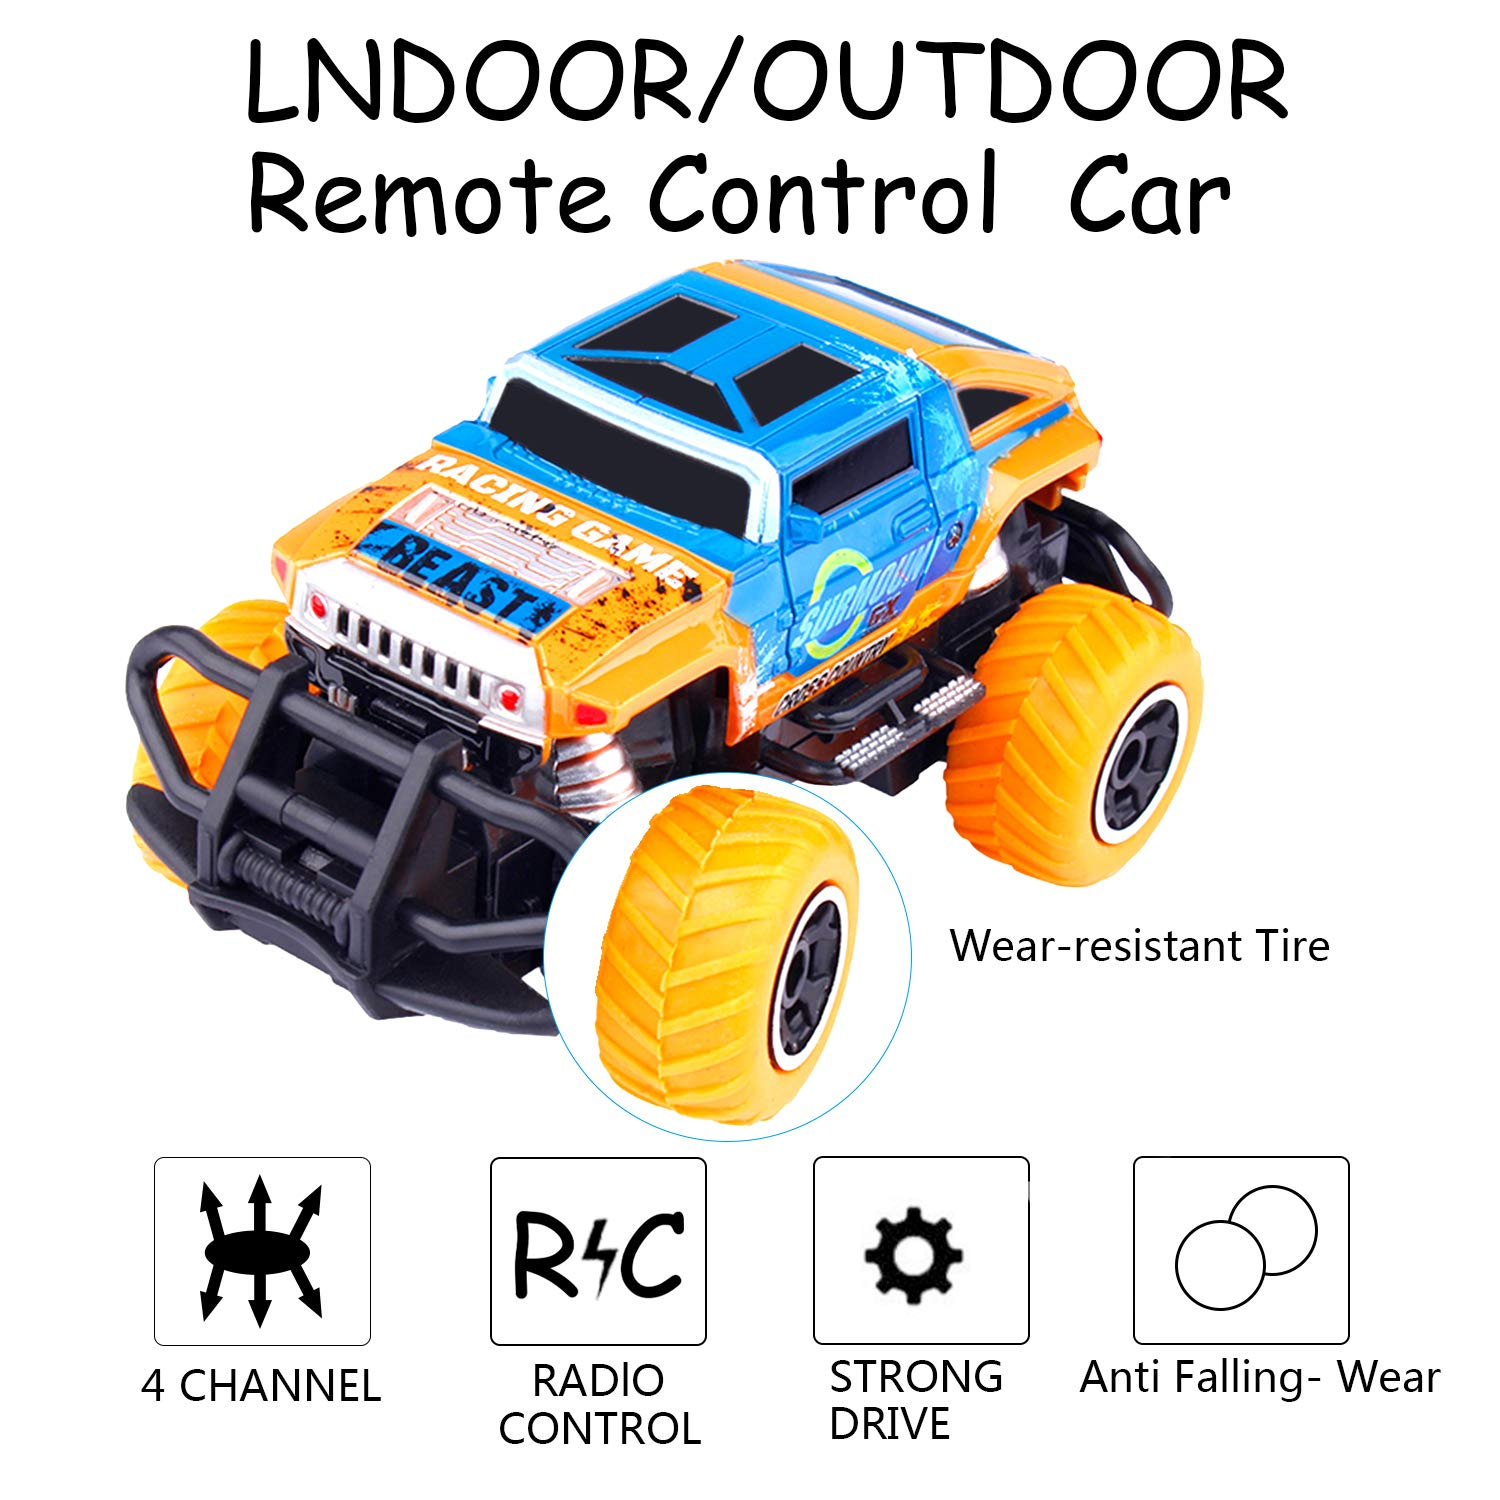 snailrun RC Off-Road Vehicle Remote Control Car for Kids Toys or Gifts